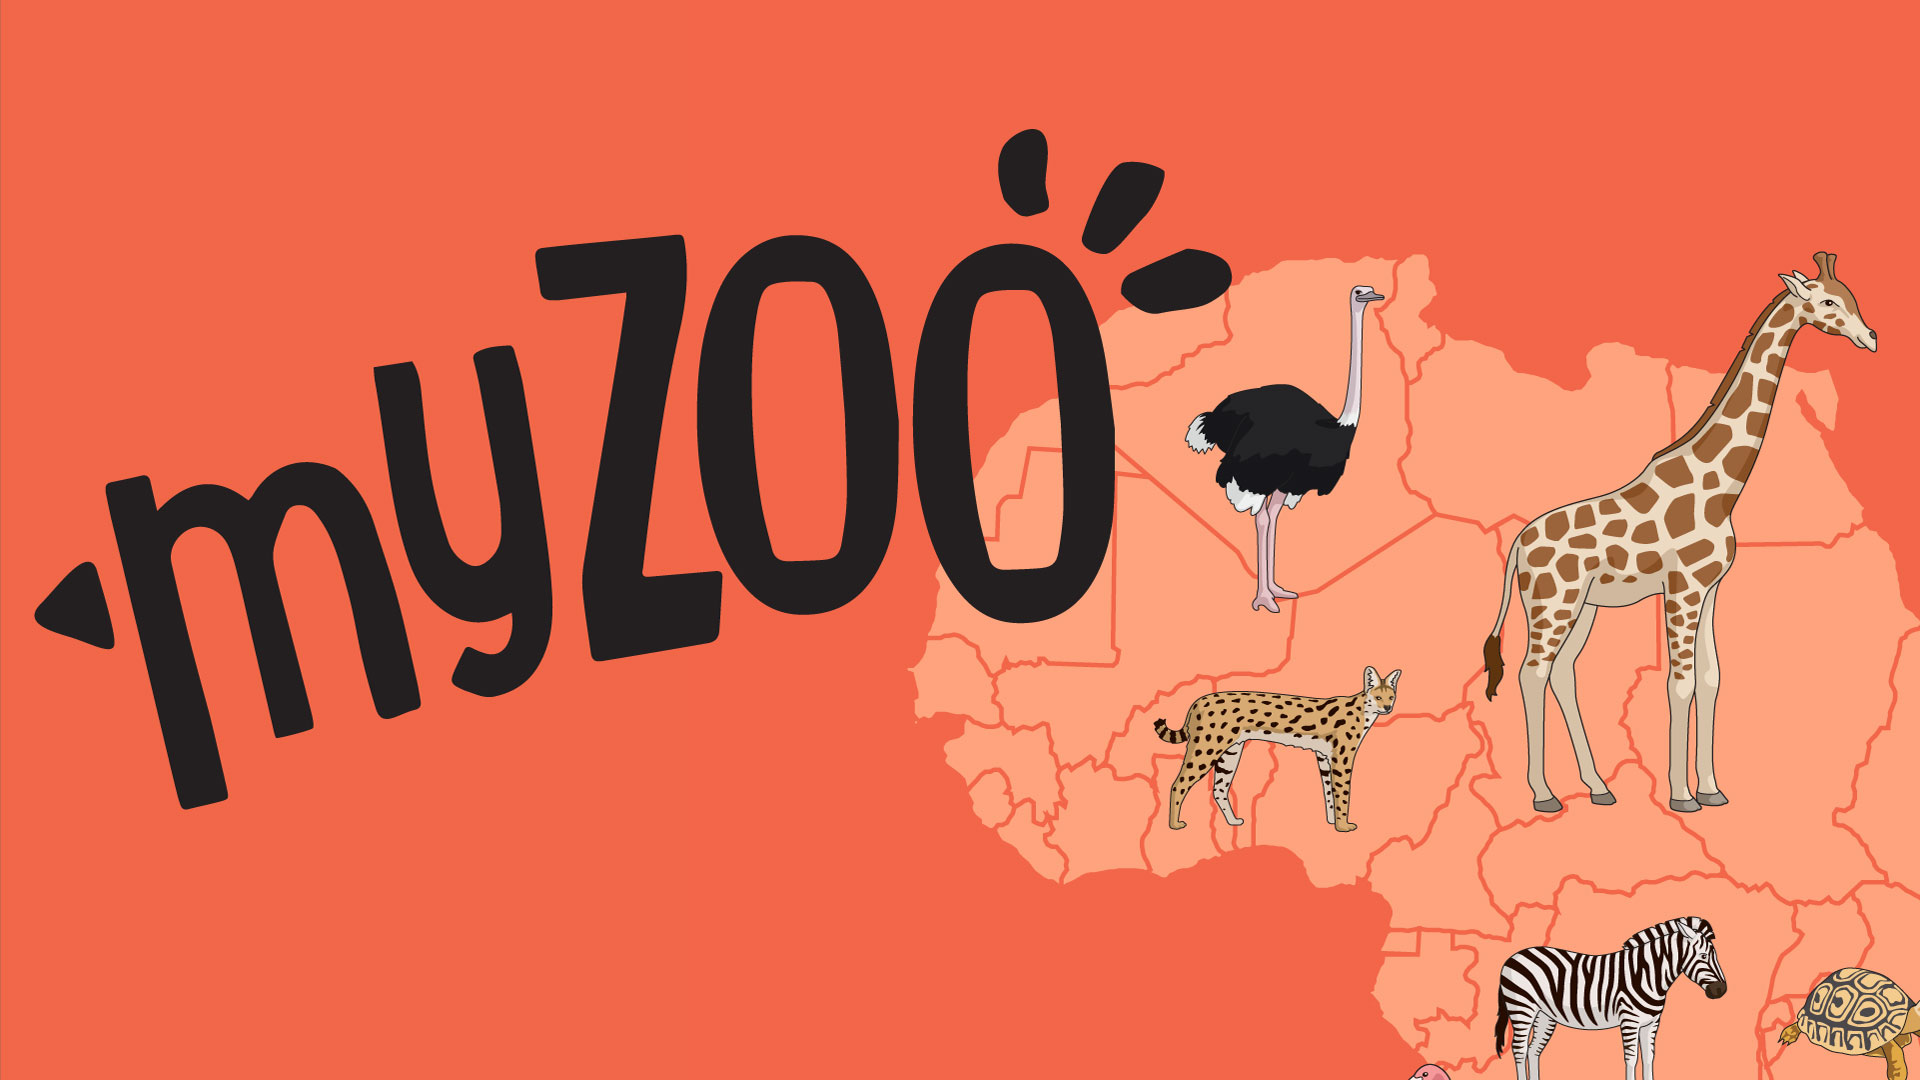 https://rfacdn.nz/zoo/assets/media/azoo-myzoo-africa.jpg